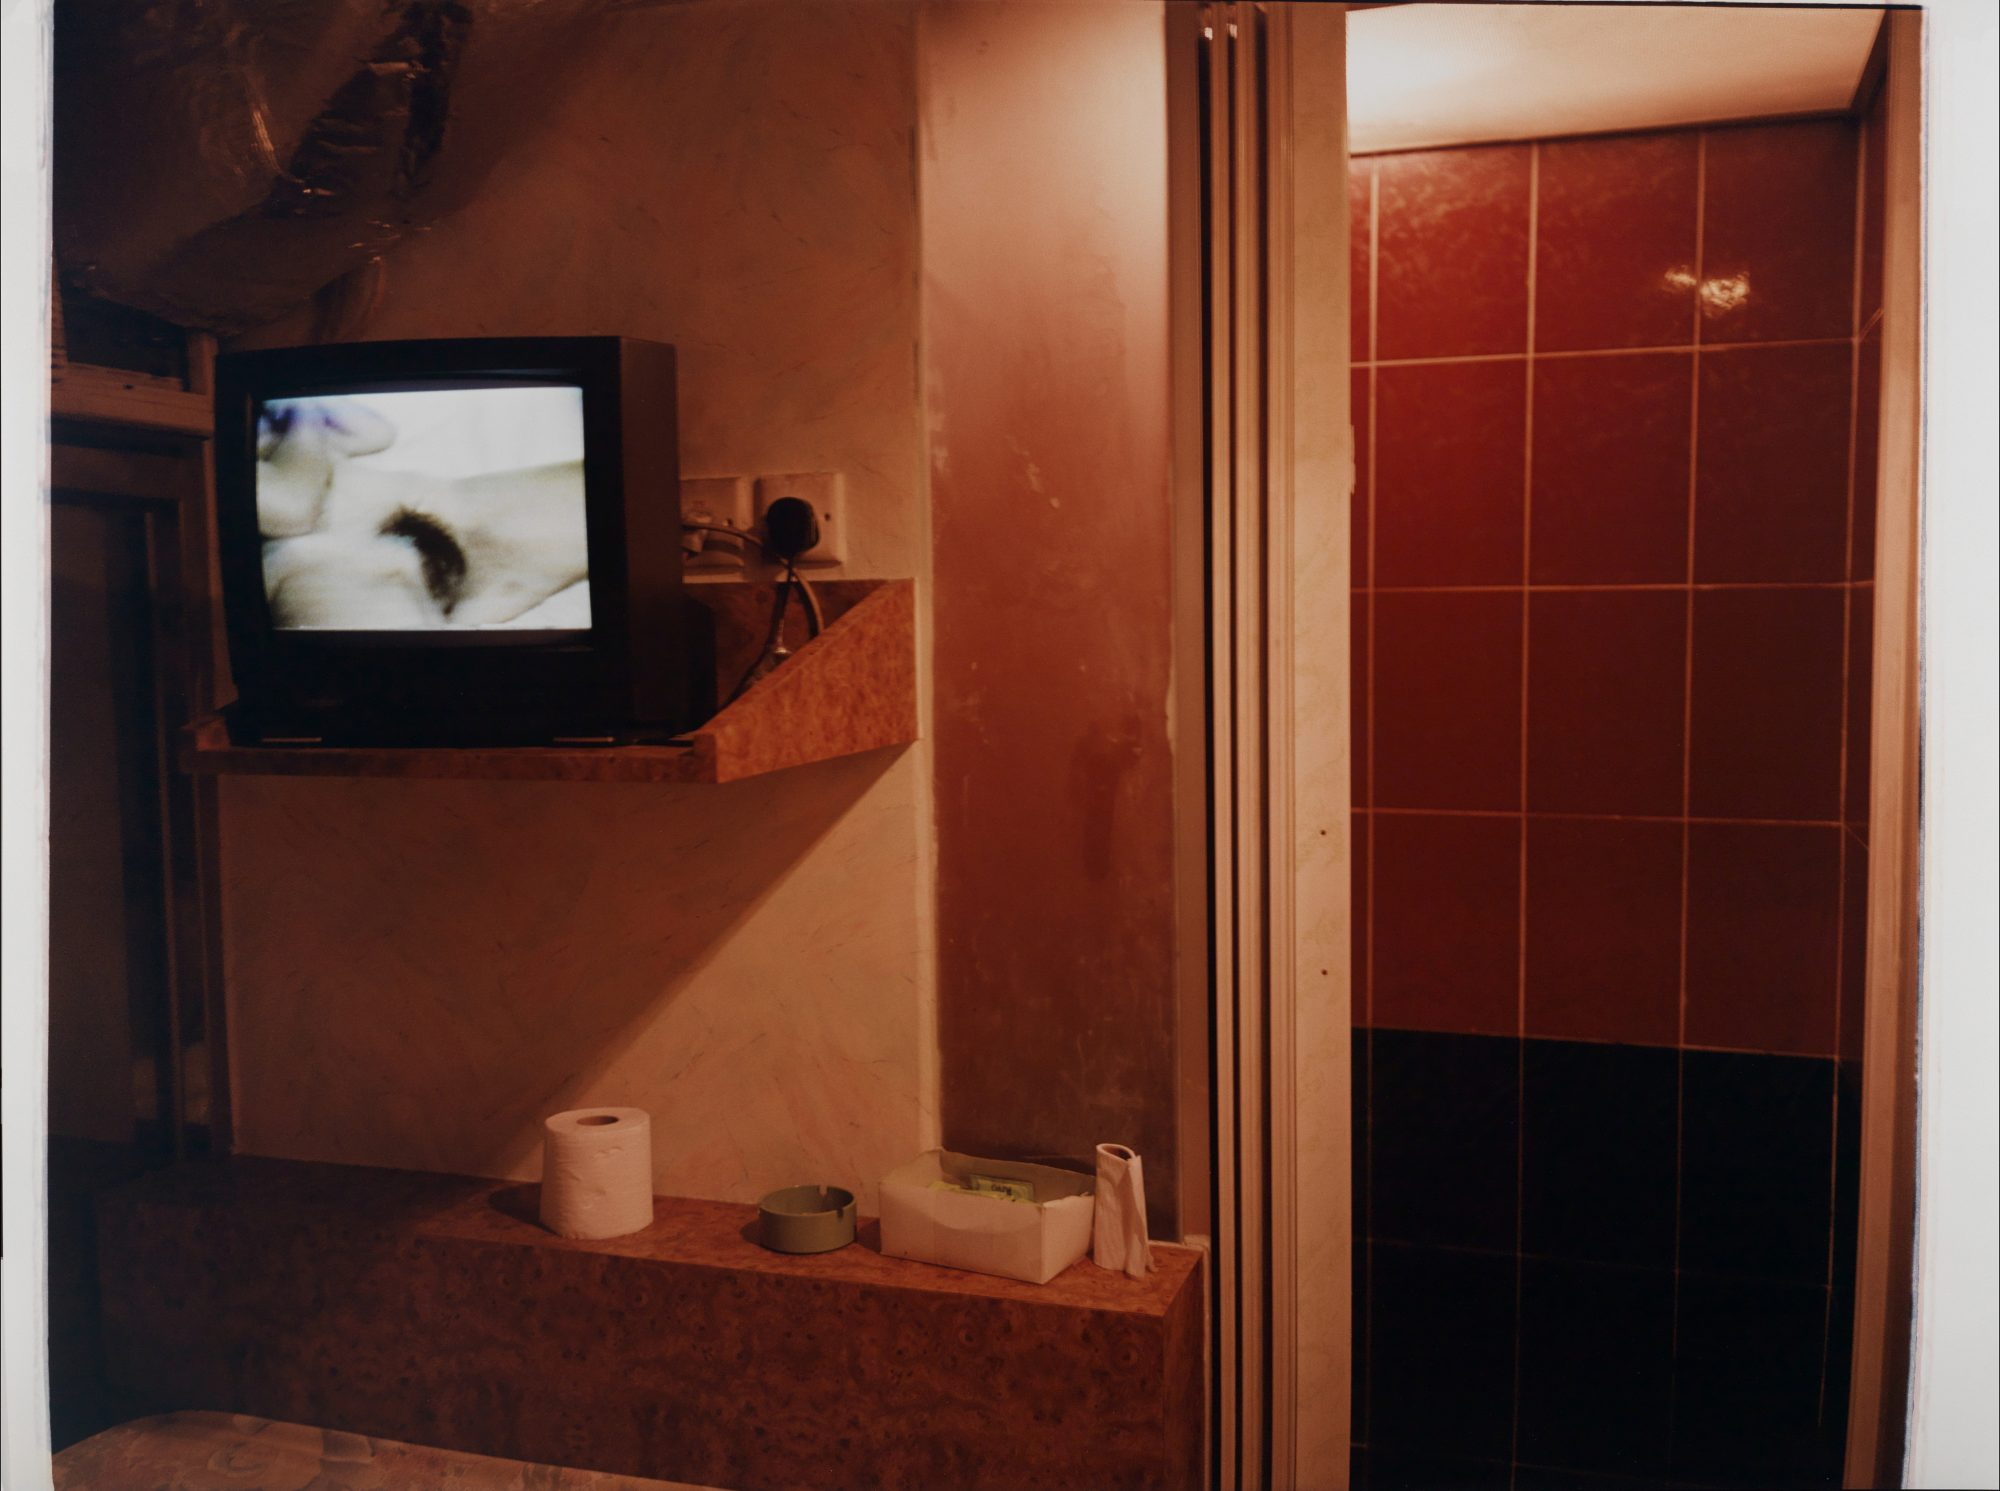 Reagan Louie (American, b. 1951) Room with TV. Hong Kong, 1997. Type C-print, Gift of the artist in honor of his son, Ralston Peregrine Louie, Class of 2014, M.2014.13.3